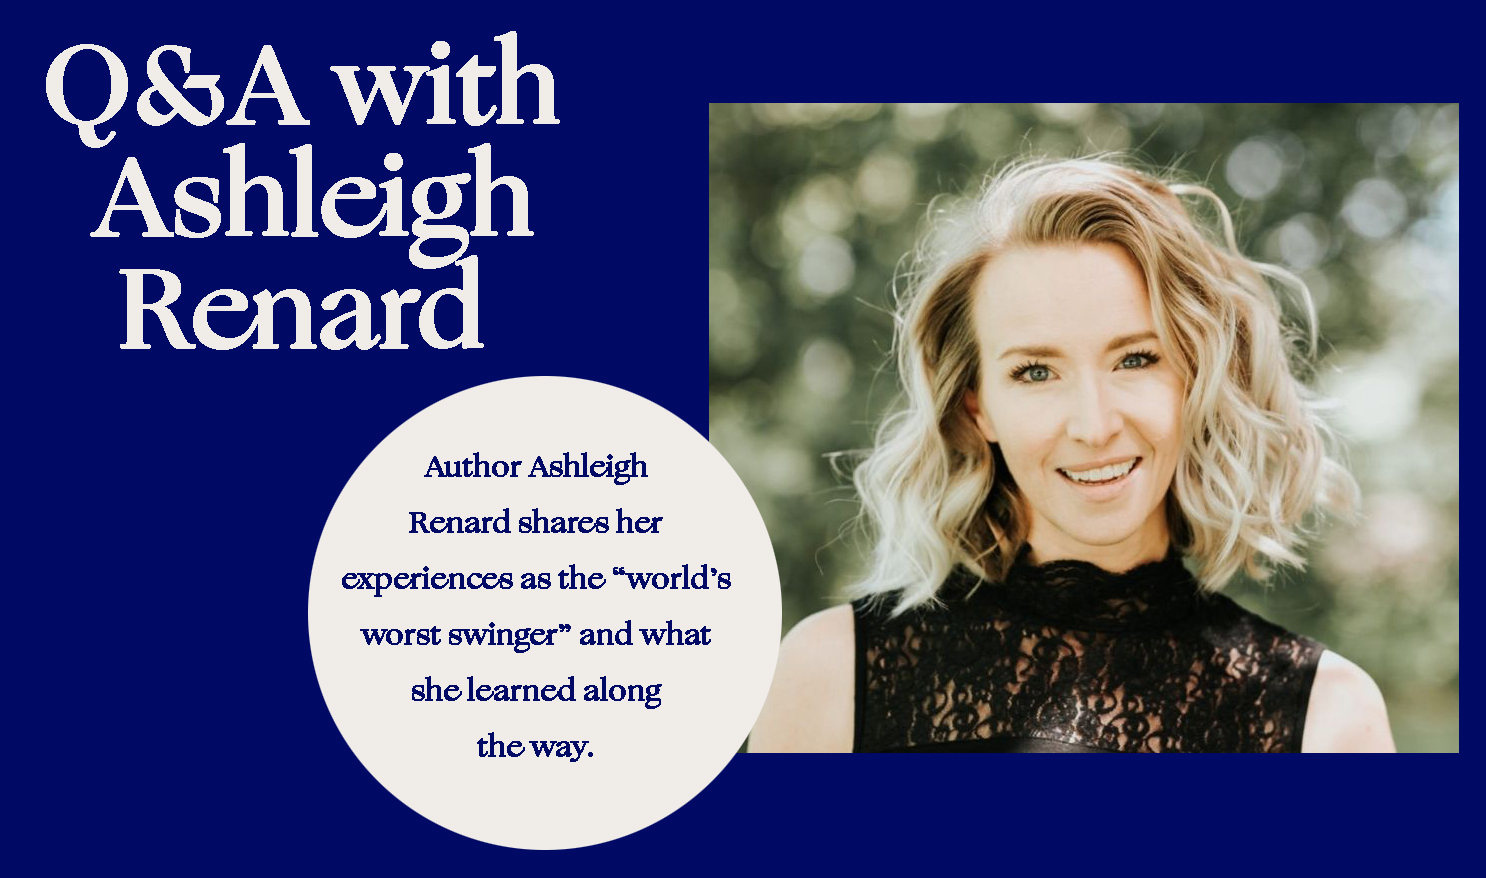 Getting intimate with Swing author Ashleigh Renard